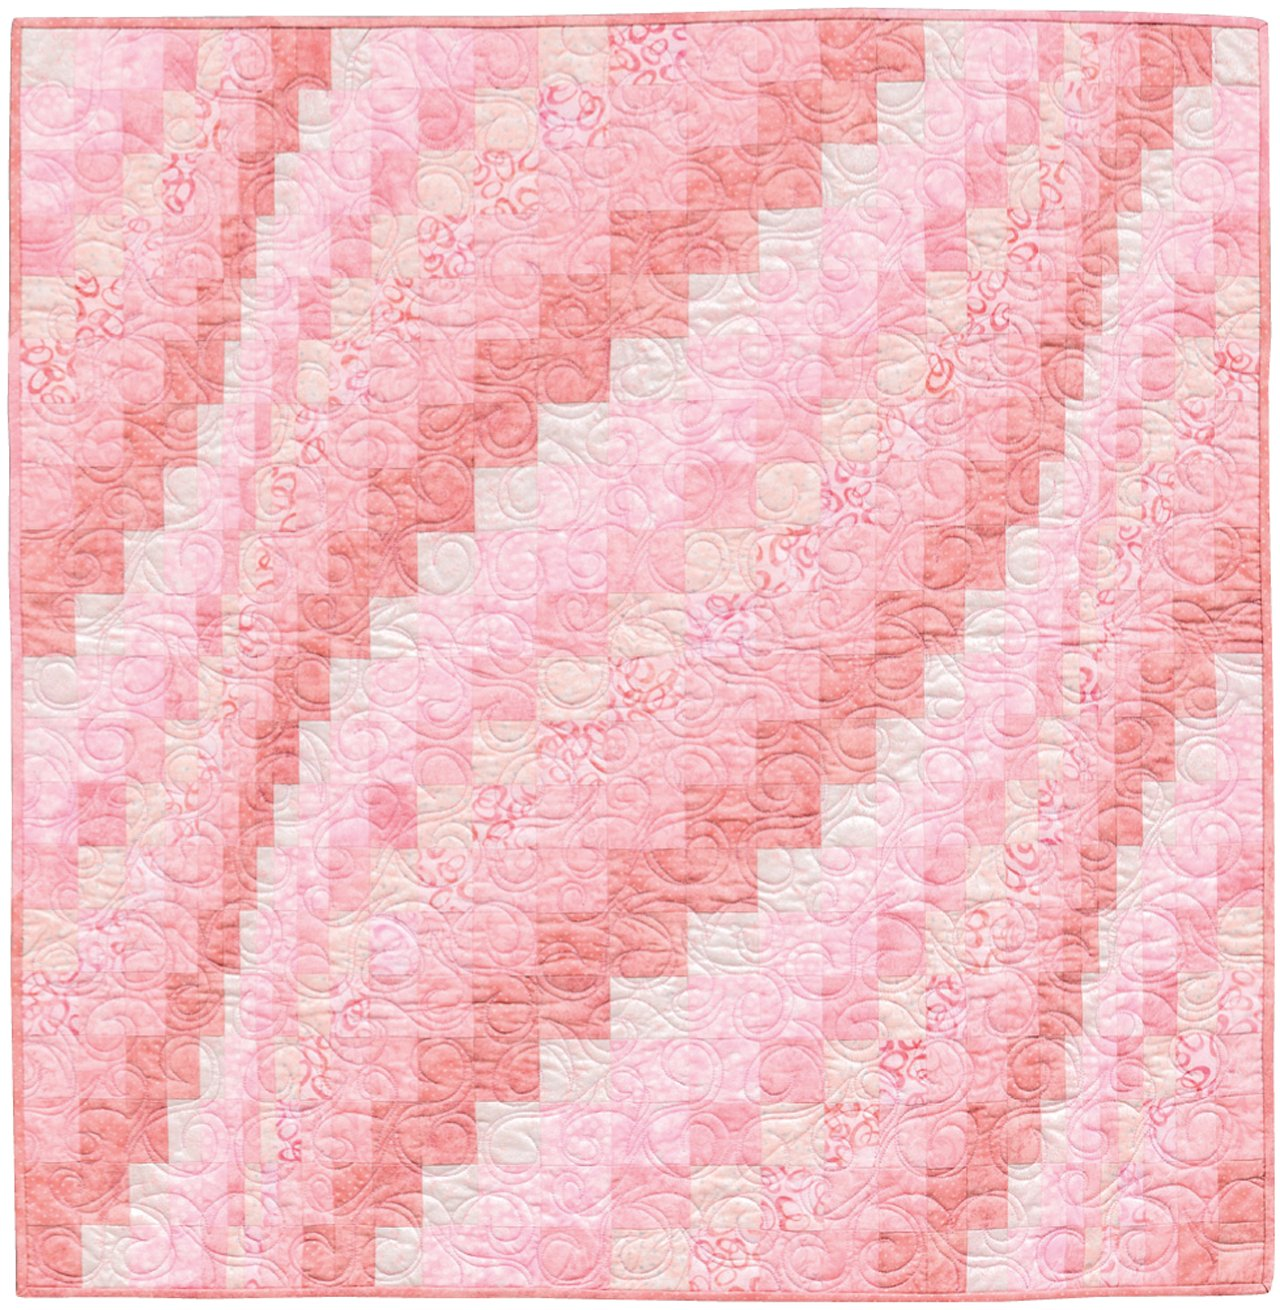 More twist and turn bargello quilts strip piece 10 new projects more twist and turn bargello quilts strip piece 10 new projects eileen wright 9781604682595 amazon books fandeluxe Image collections